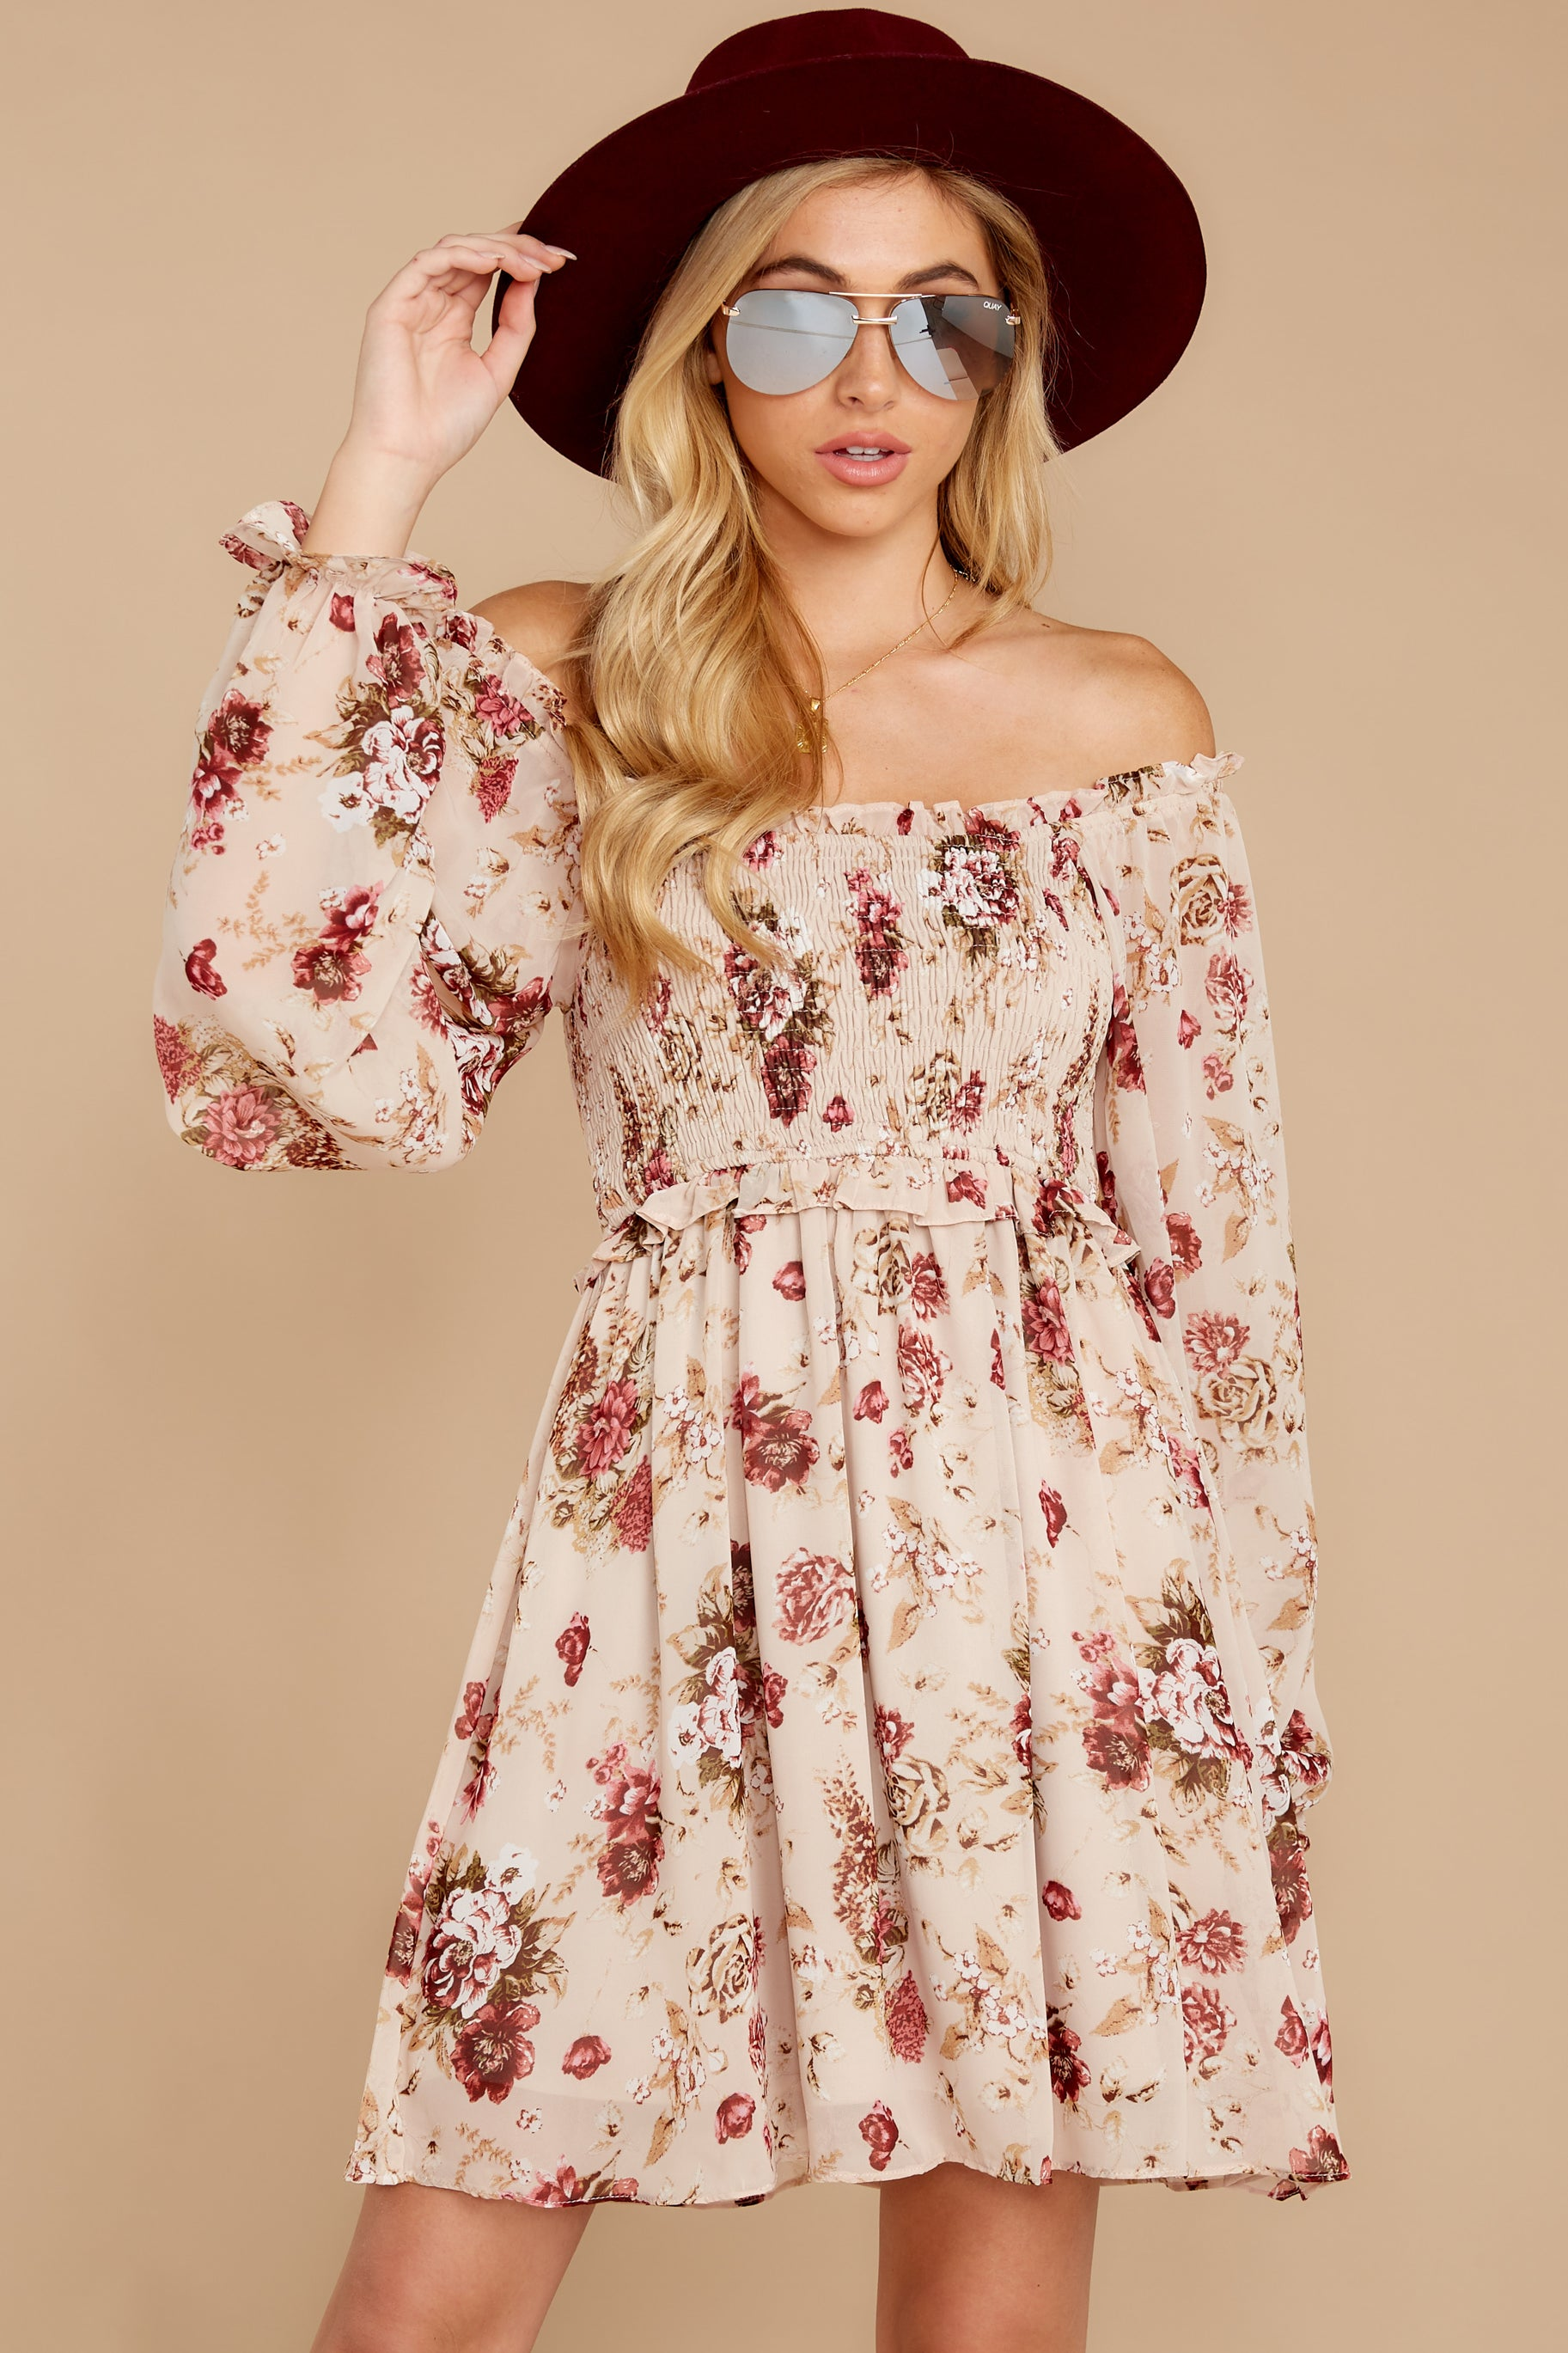 6 Another Love Story Ivory Blush Floral Print Dress at reddressboutique.com